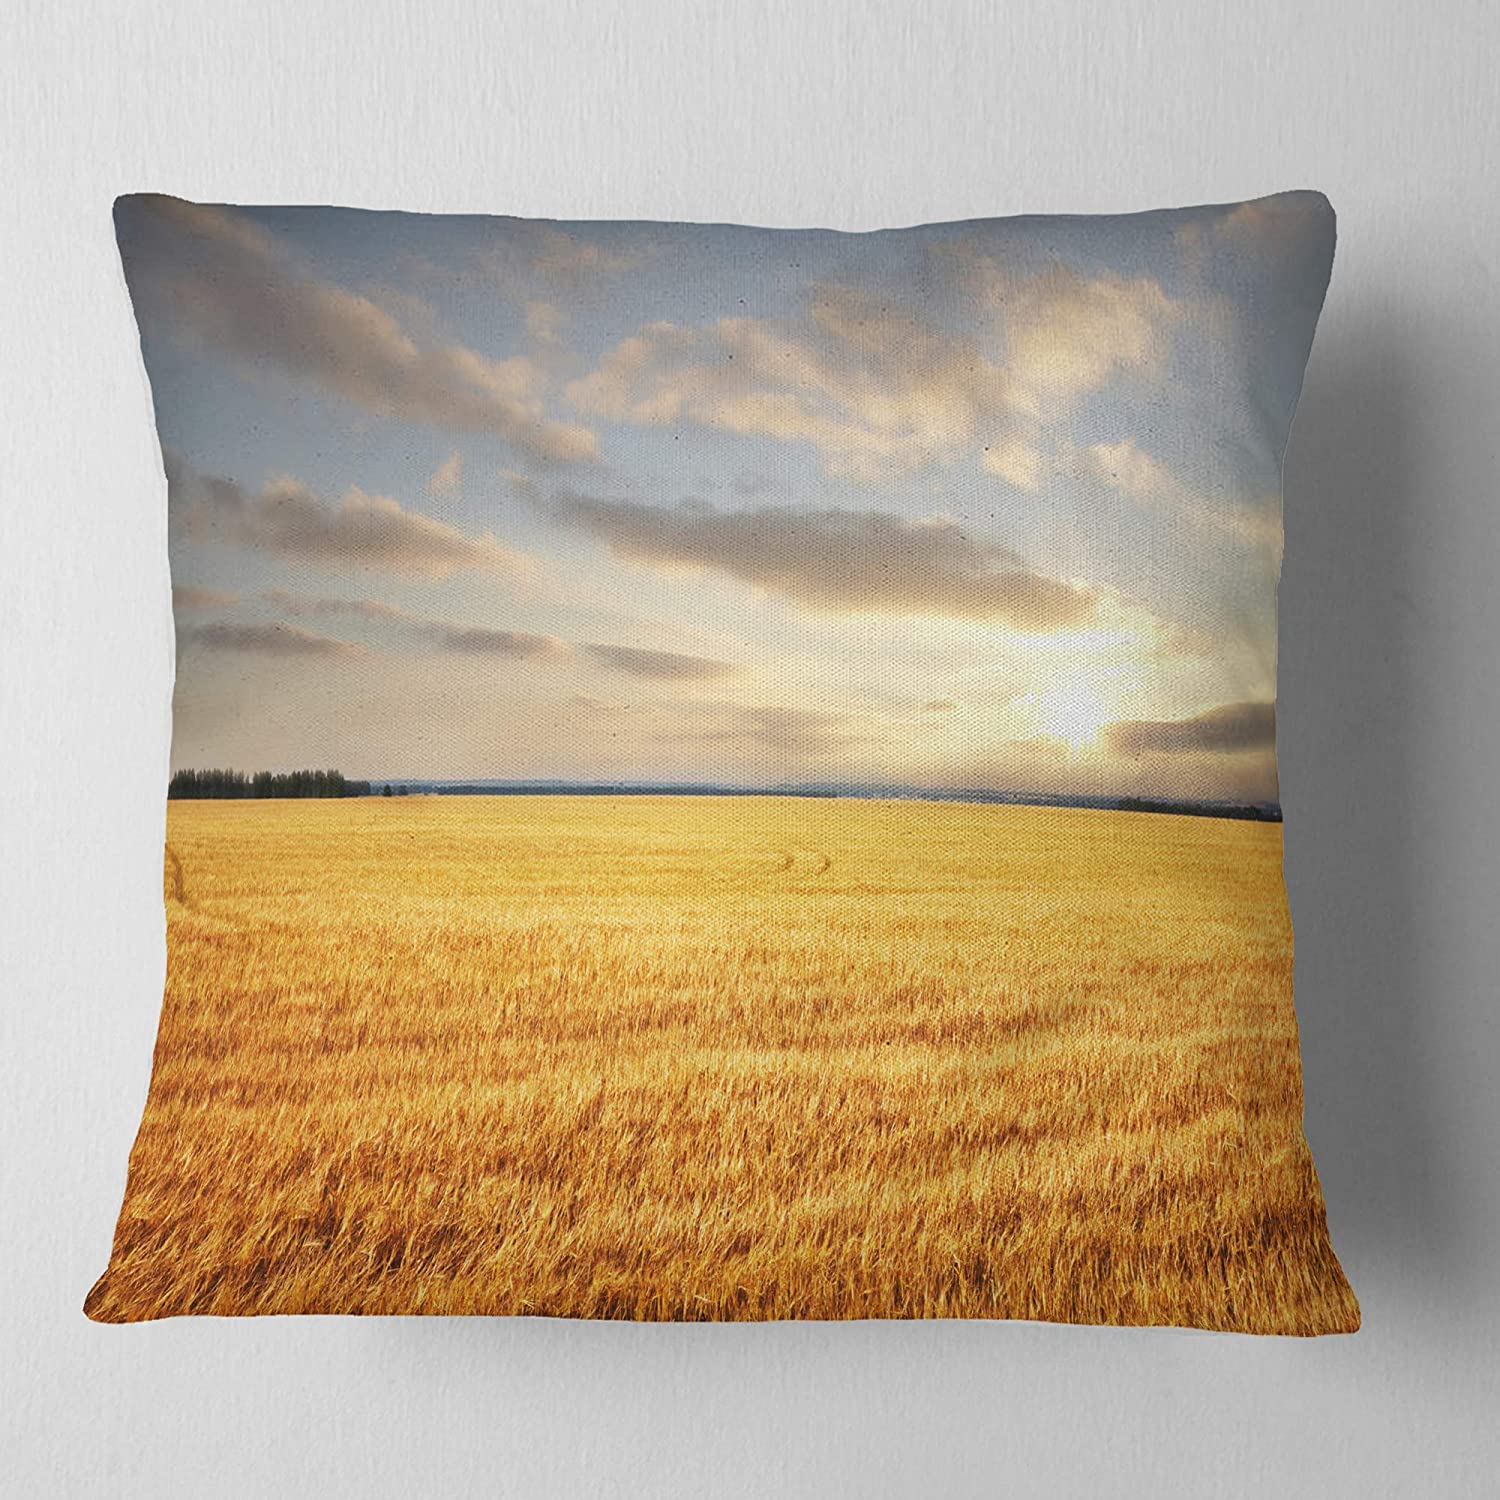 Designart CU12198-18-18 Expansive Brown Field' Landscape Printed Cushion Cover for Living Room, Sofa Throw Pillow, 18' x 18', Insert